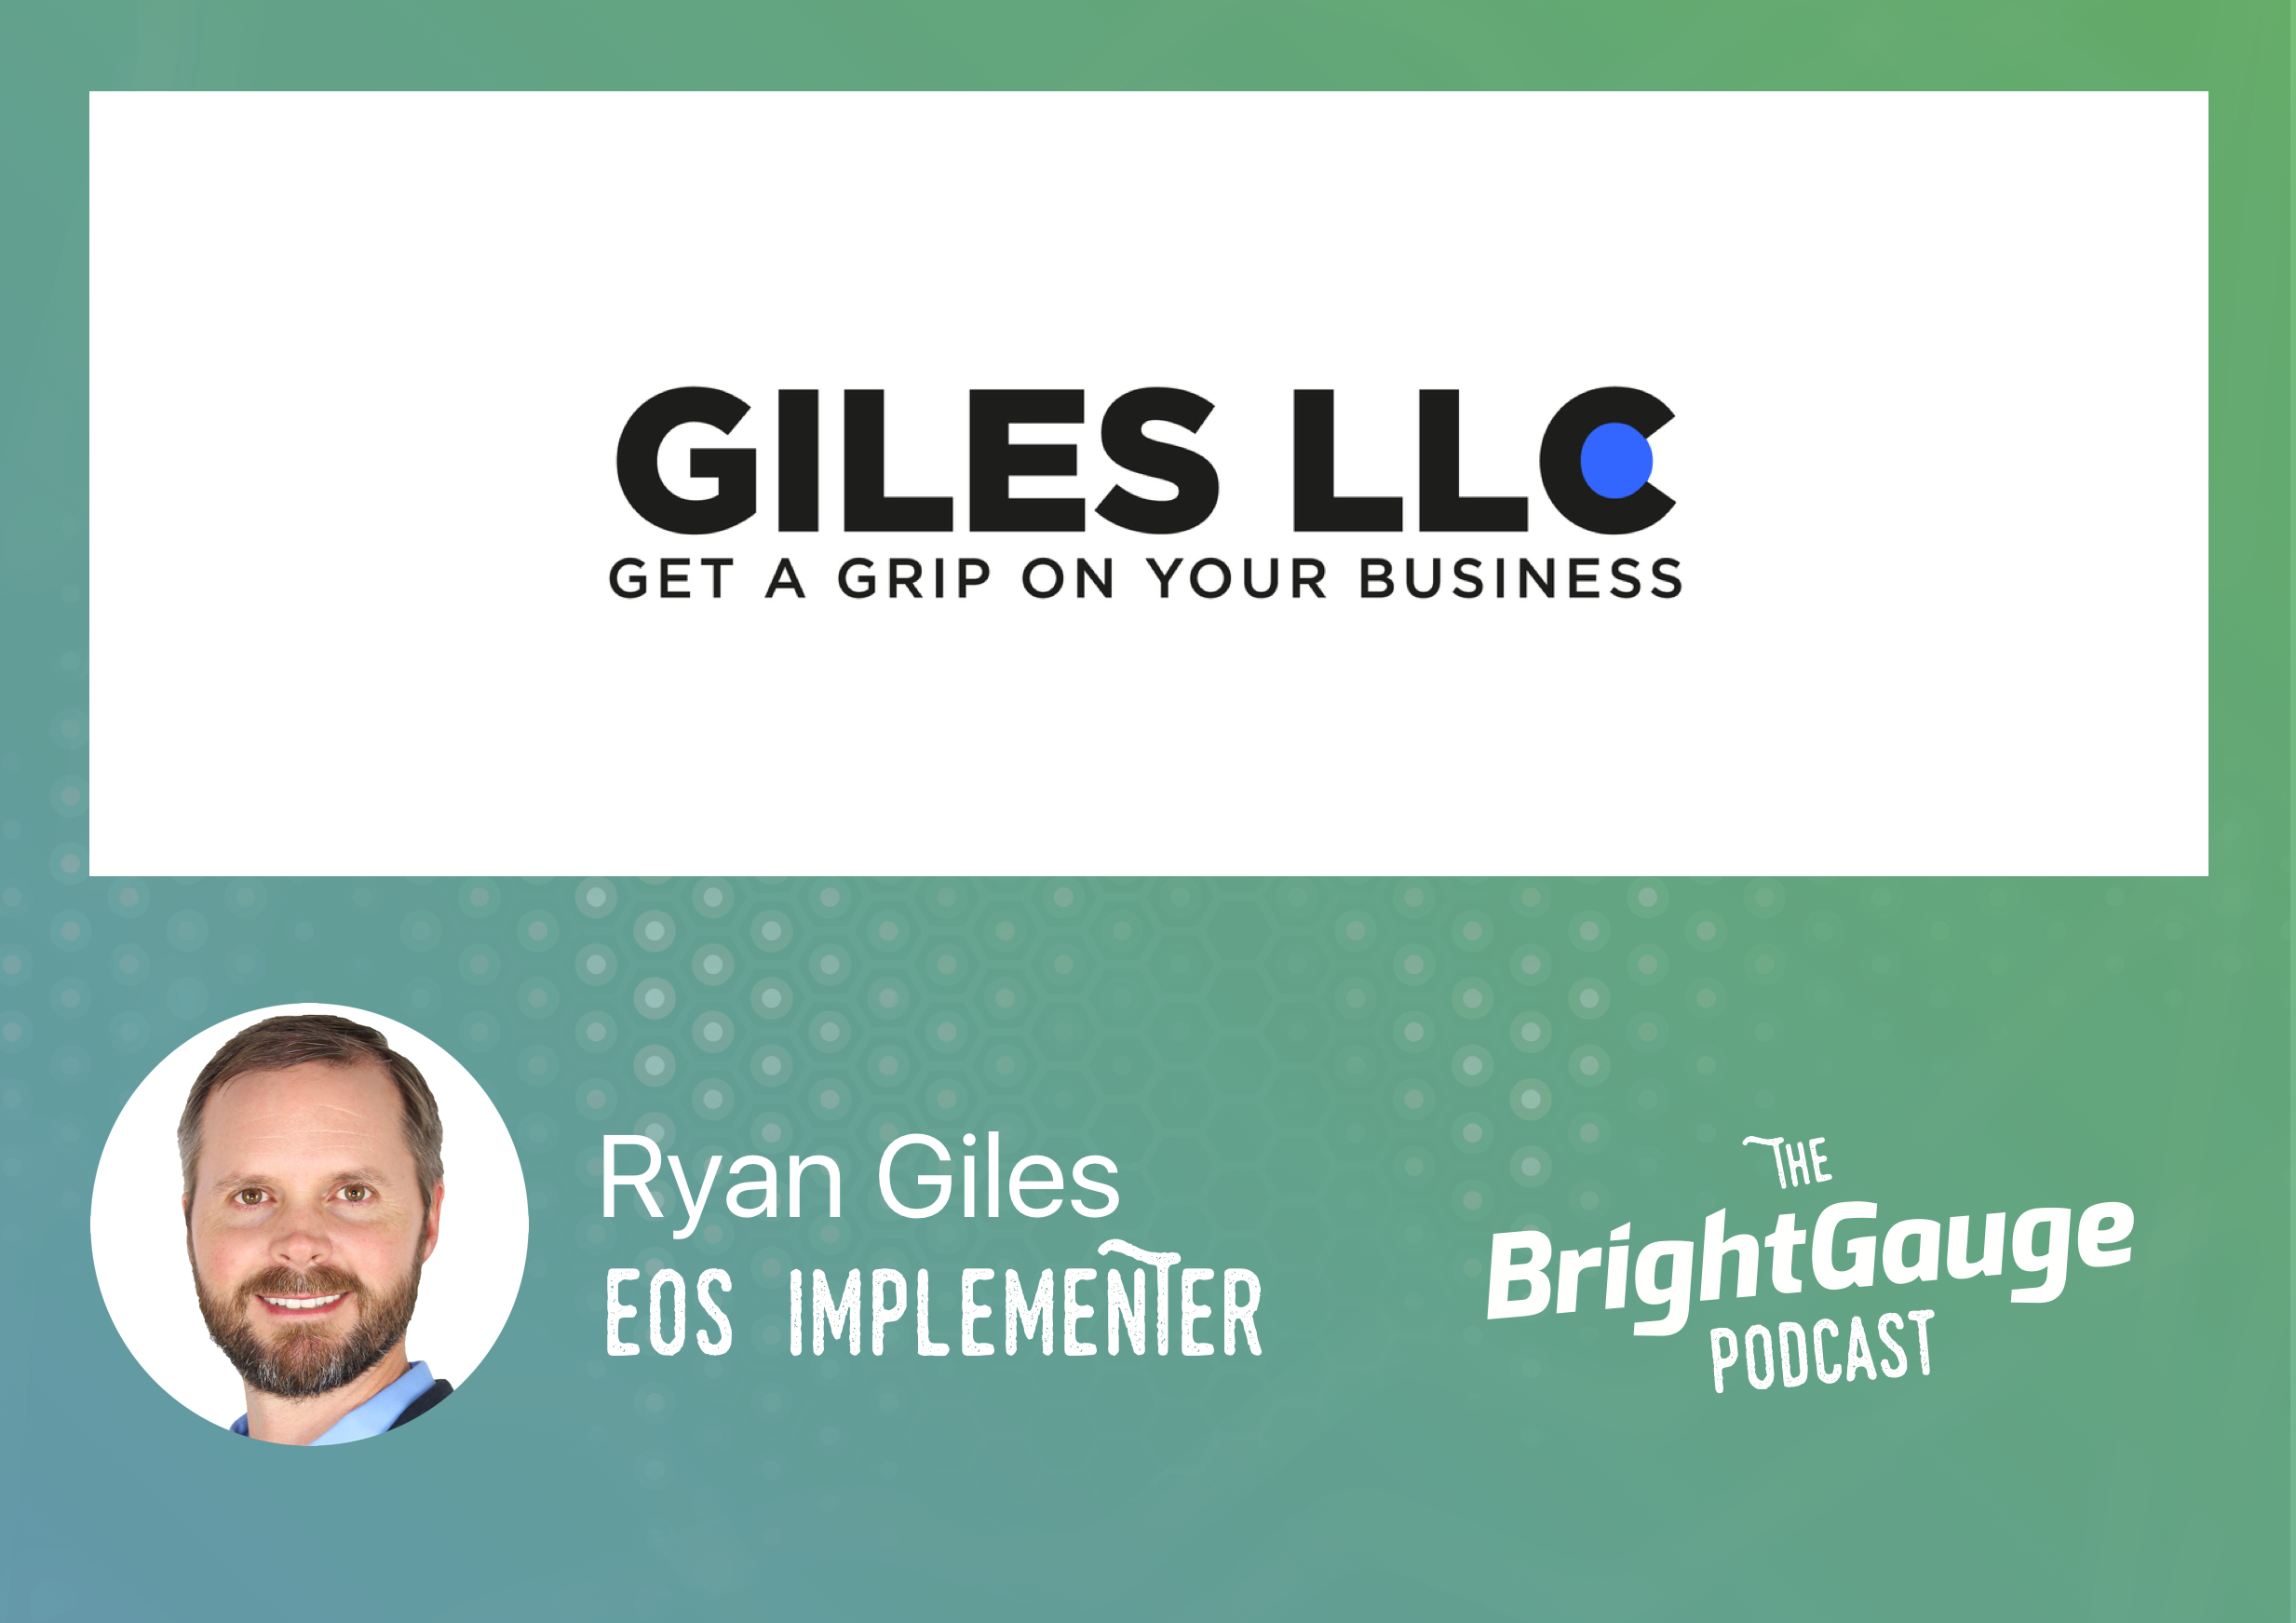 [Podcast] Episode 37 with Ryan Giles, Professional EOS Implementer